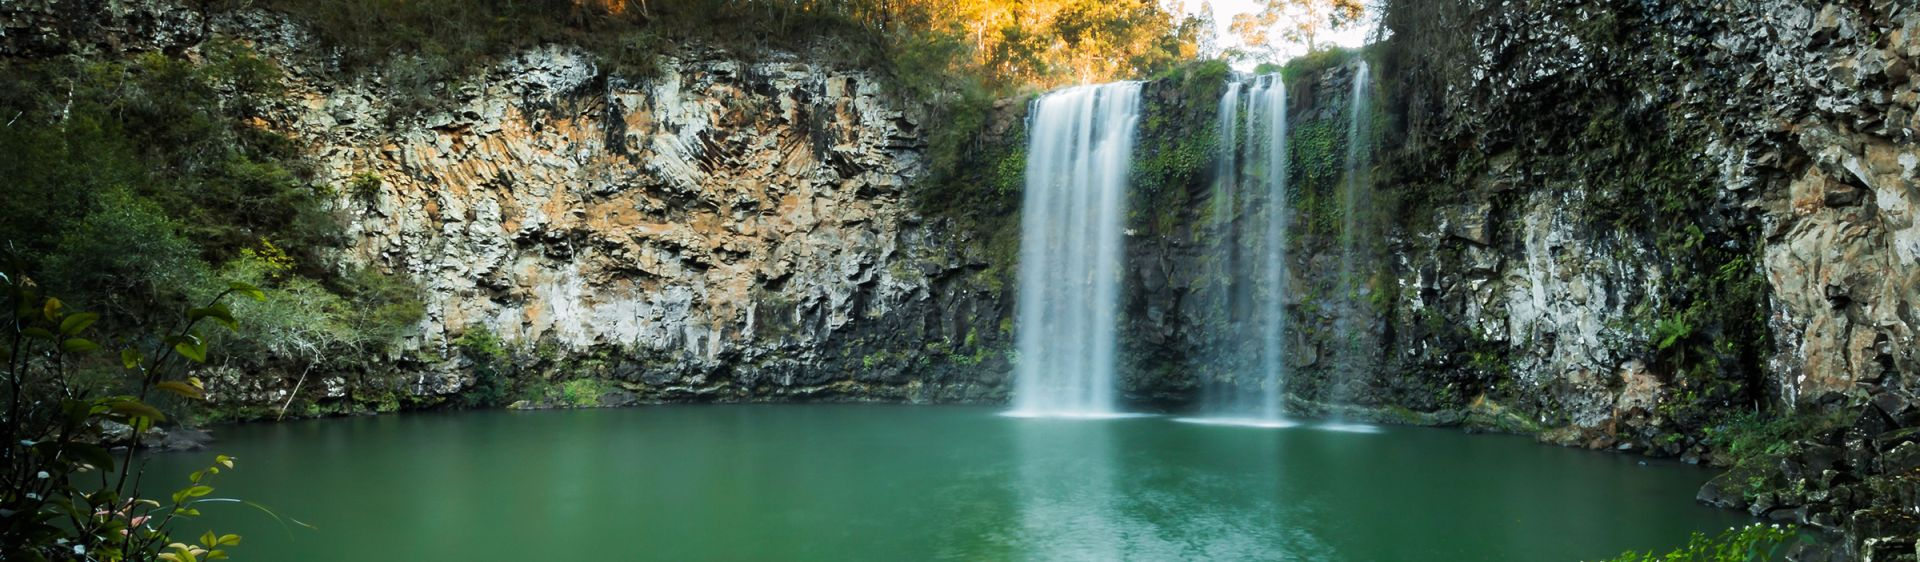 Dangar Falls cascading over 30 metre drop, just north of Dorrigo township.